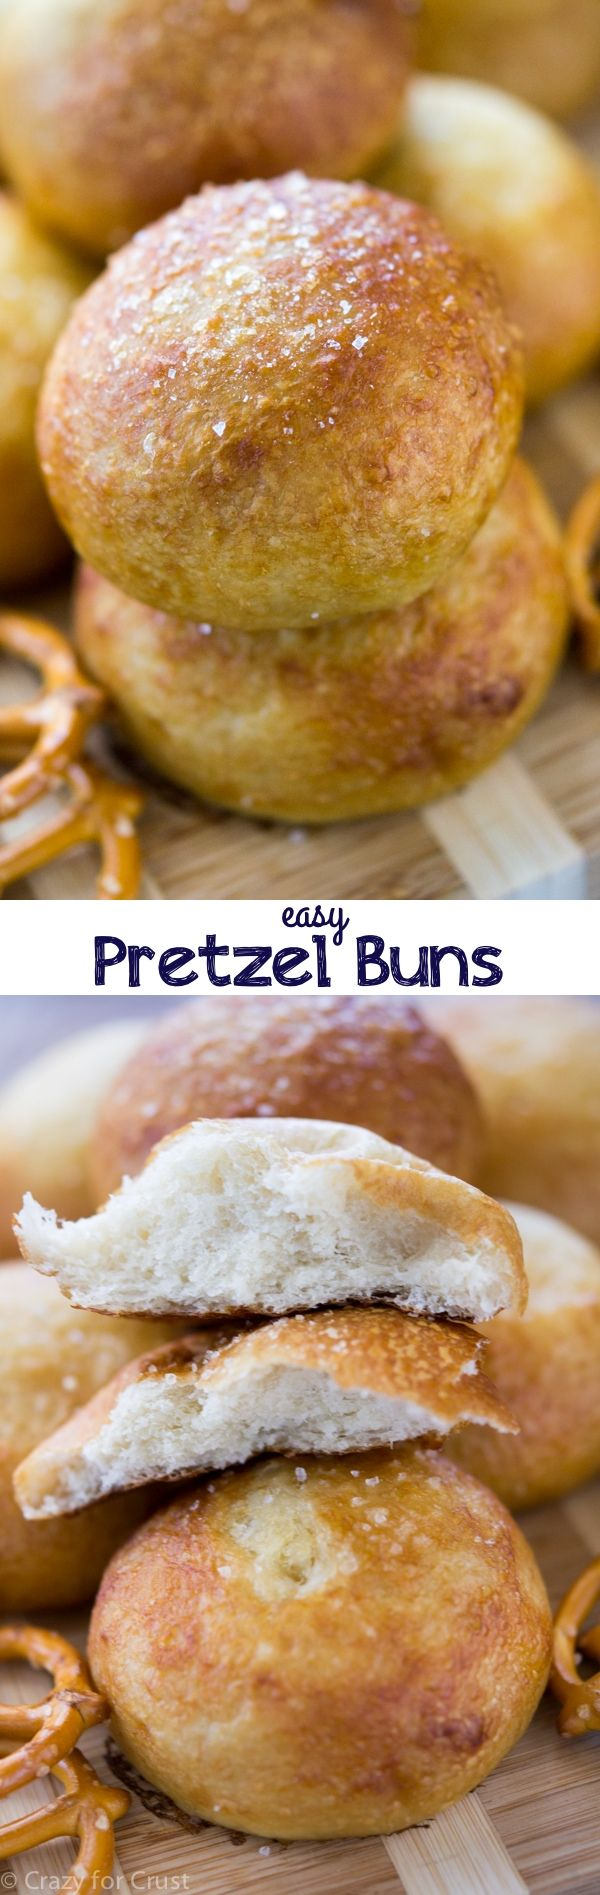 Easy Pretzel Buns made with frozen dinner rolls! Only 10 minutes of active work gets you amazing pretzel rolls!